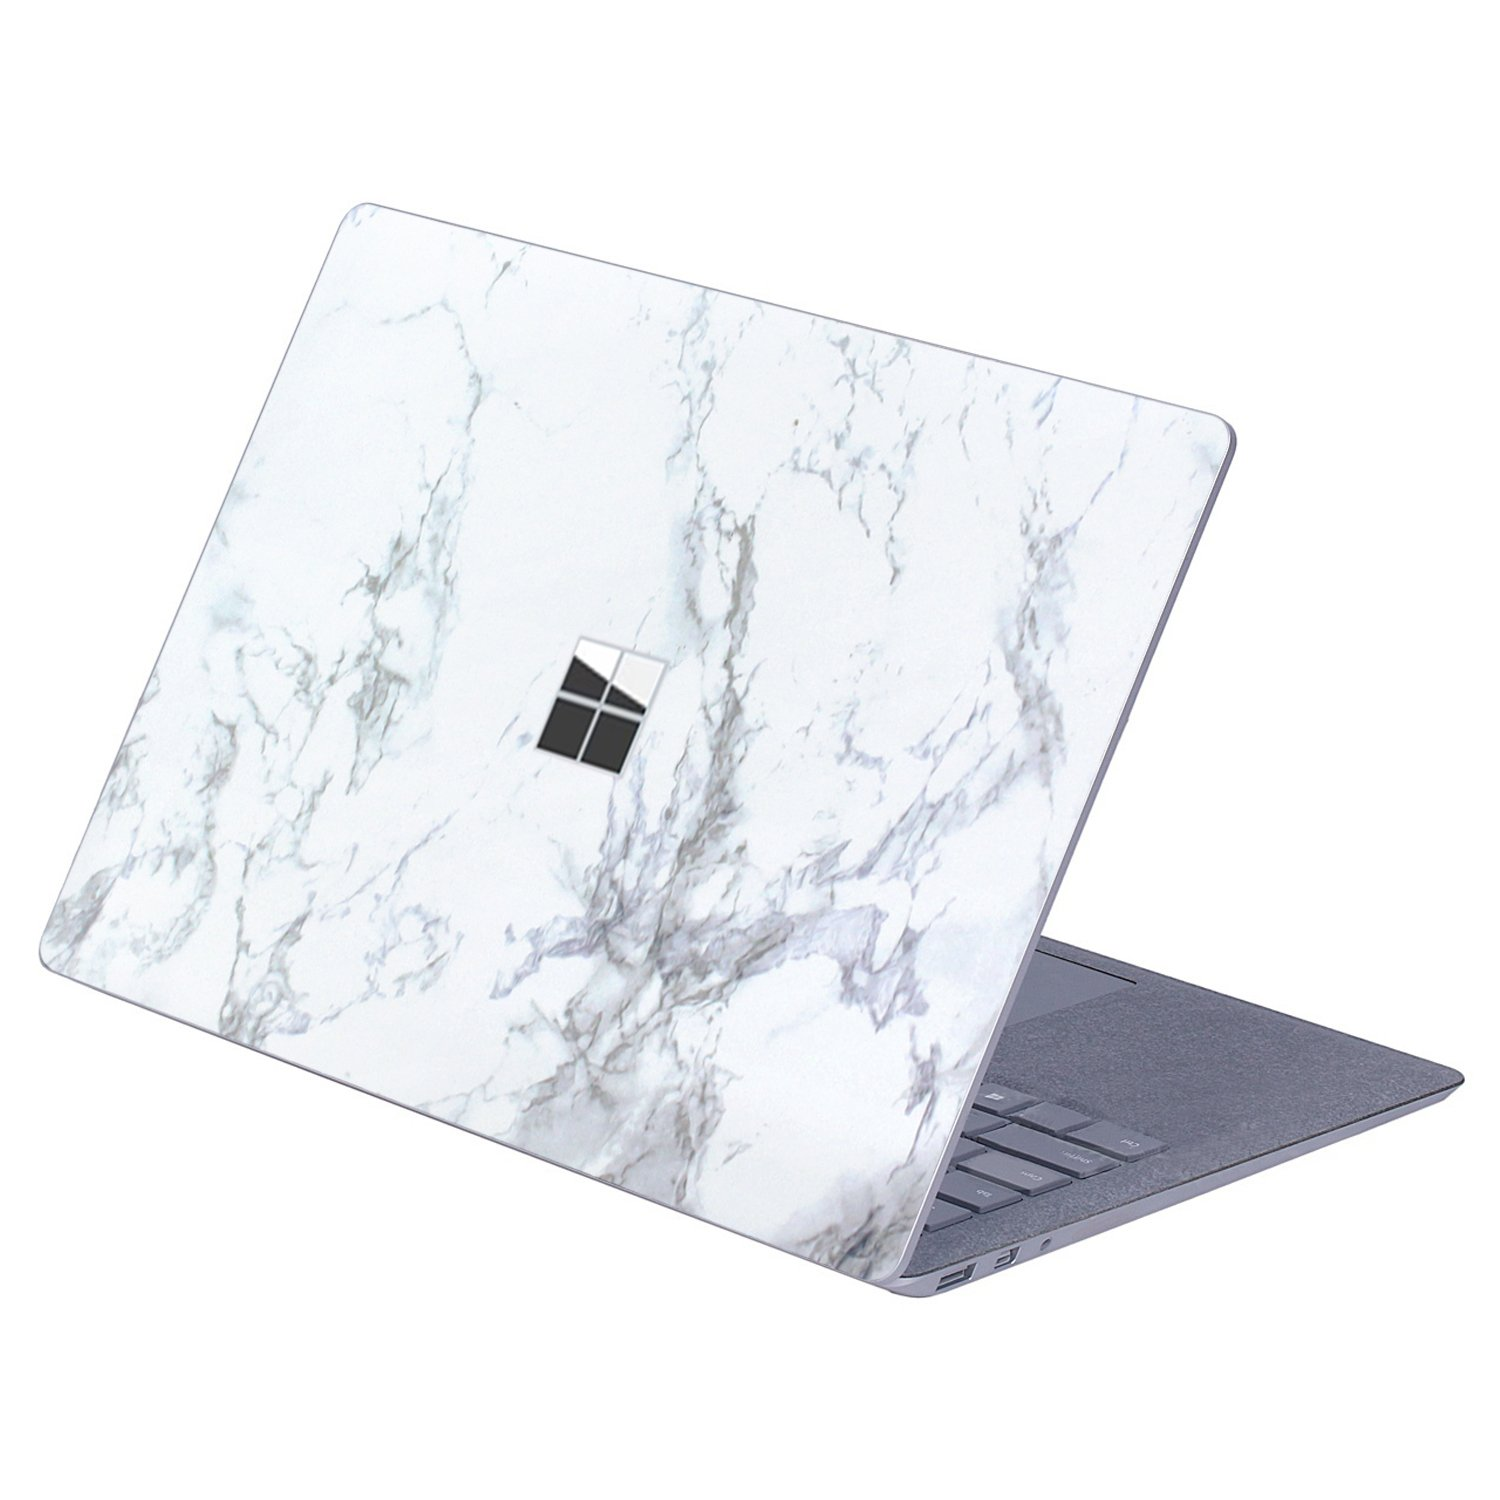 Masino Protective Decal Sticker Protector Cover Skin for 13.5 inch Microsoft Surface Laptop (For Surface Laptop, Decal - Marble White with Black)